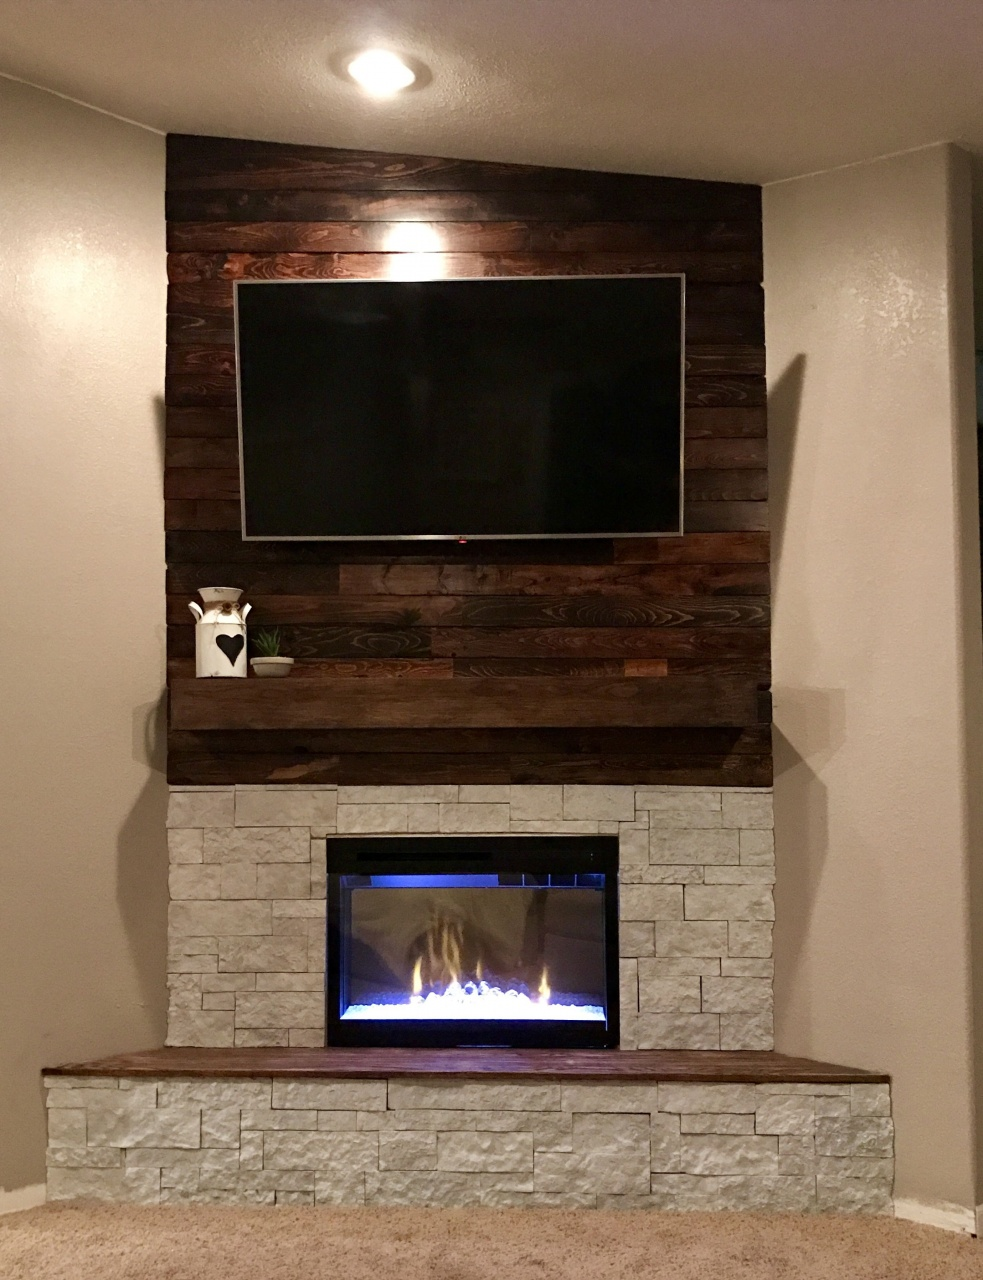 wall mounted electric fireplace design ideas 27 appealing corner fireplace ideas in the living room tags from wall mounted electric fireplace design ideas